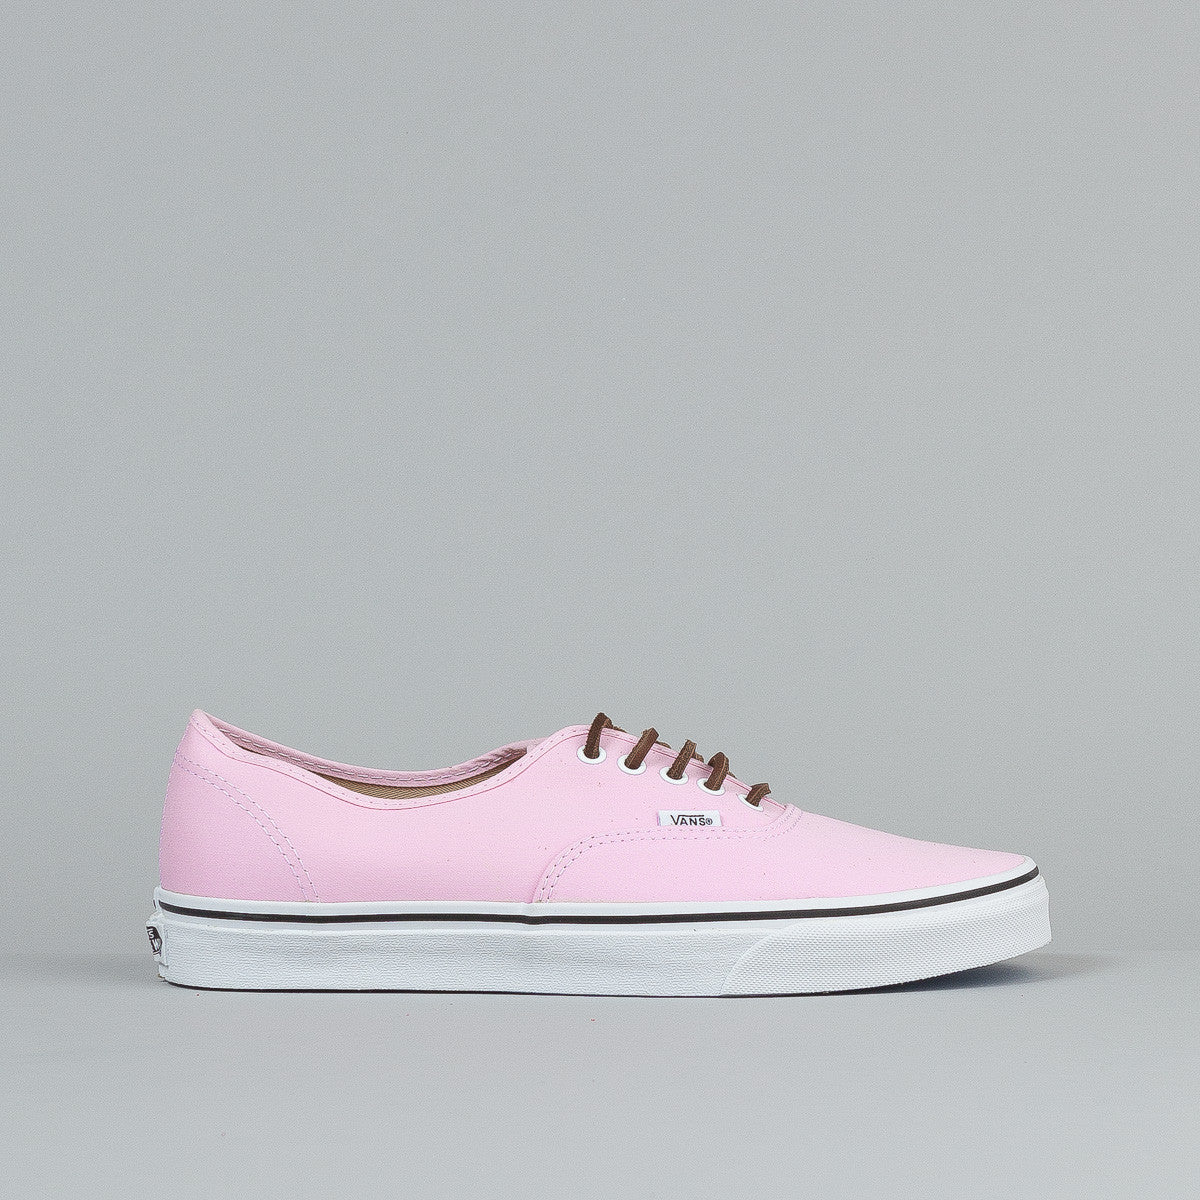 Vans Authentic CA - Brushed Twill/ Pink Mist New Style